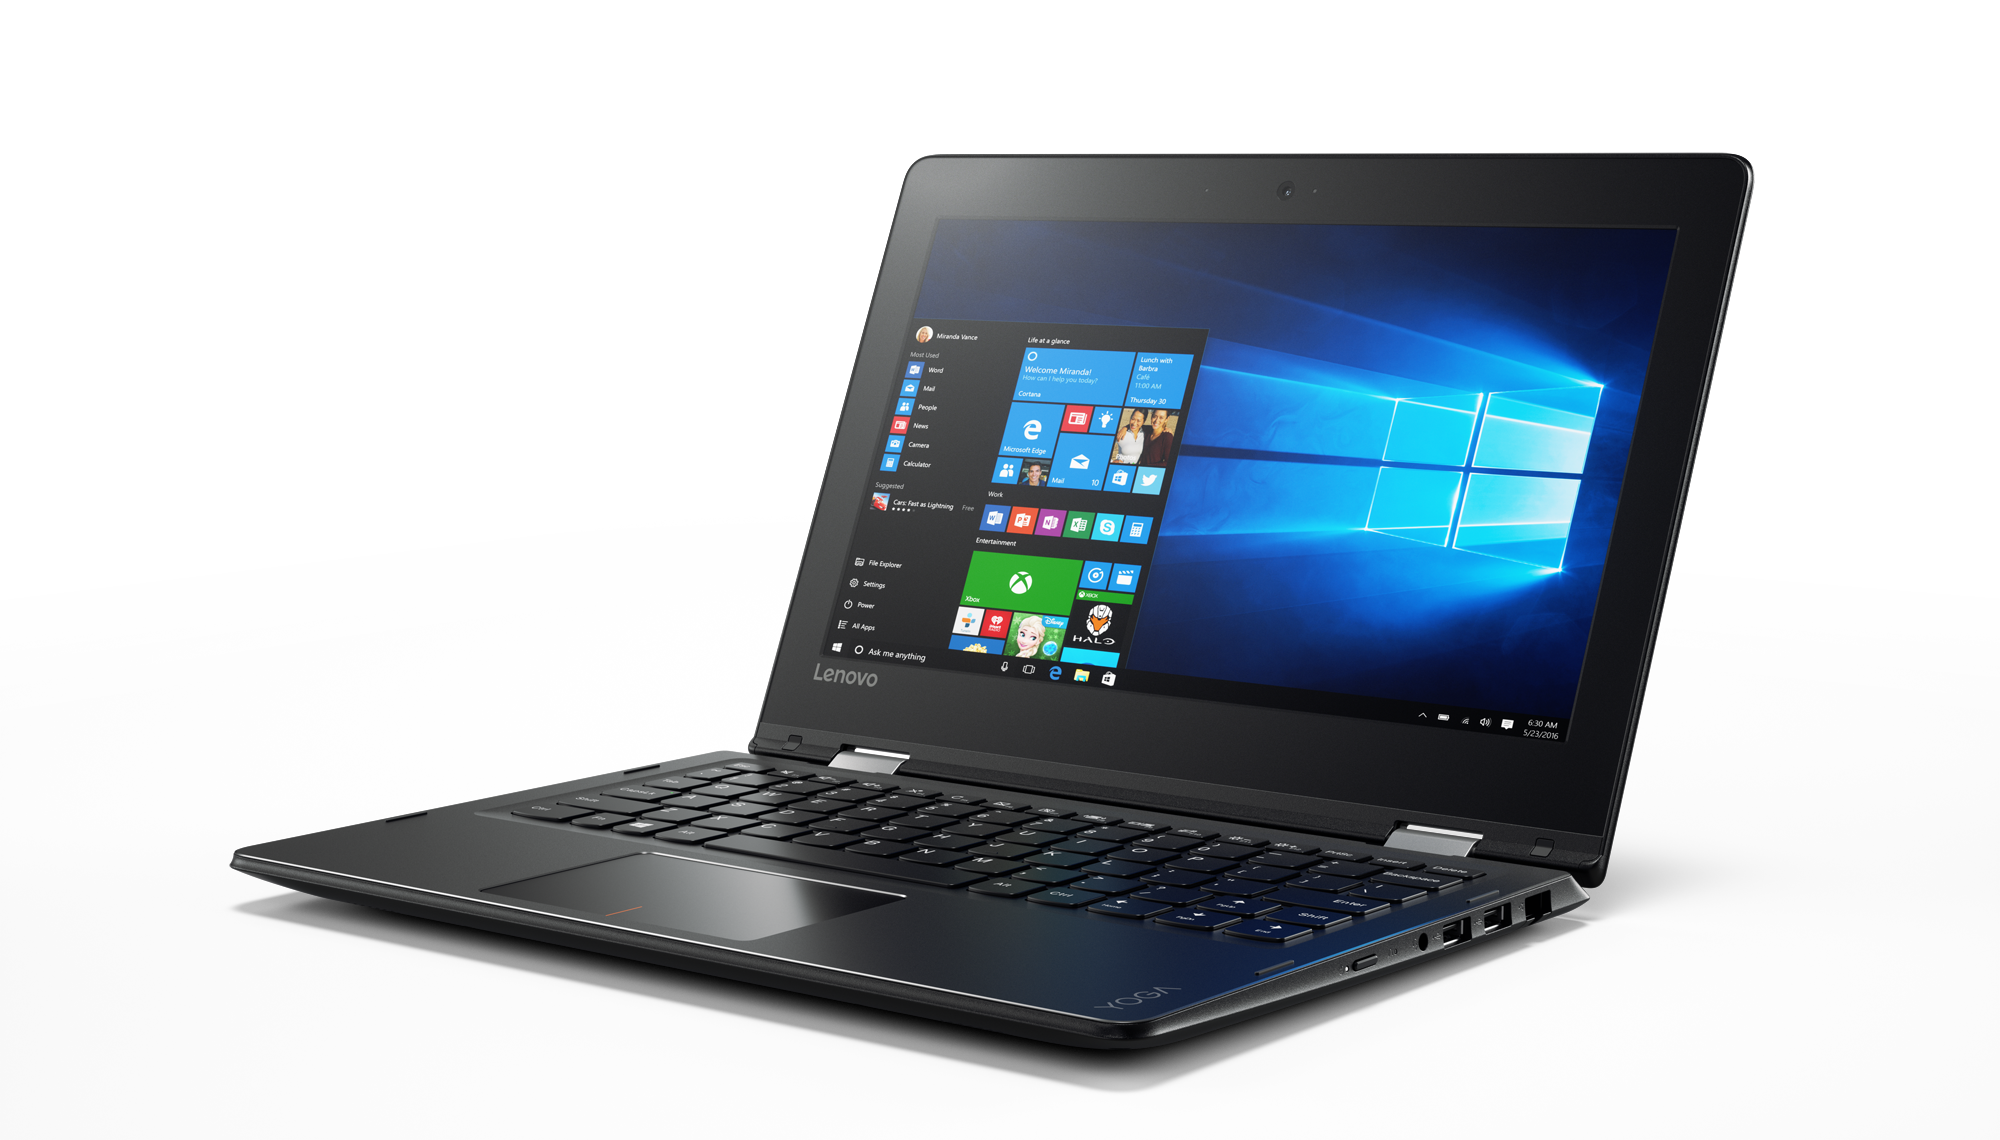 "Lenovo YOGA 310-11IAP Celeron-QC N3450 2,20GHz/4GB/32GB/11,6"" HD/IPS/AG/multitouch/WIN10 černá 80U20067CK"